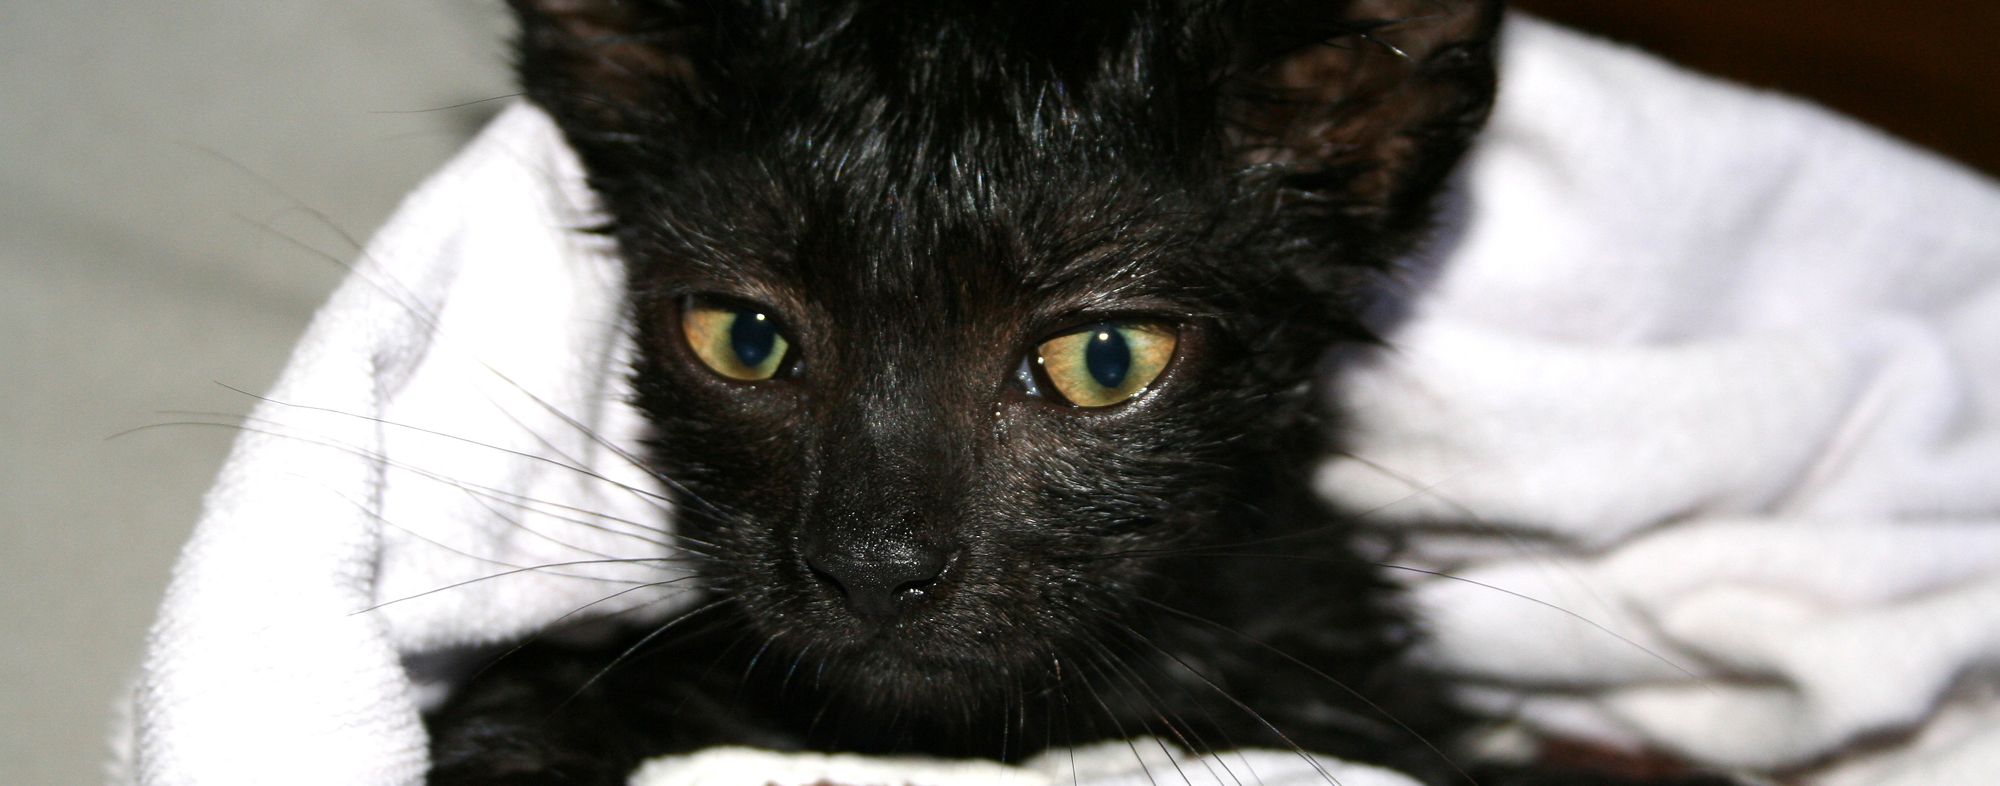 Wrapping a black kitten in a towel after bathing them